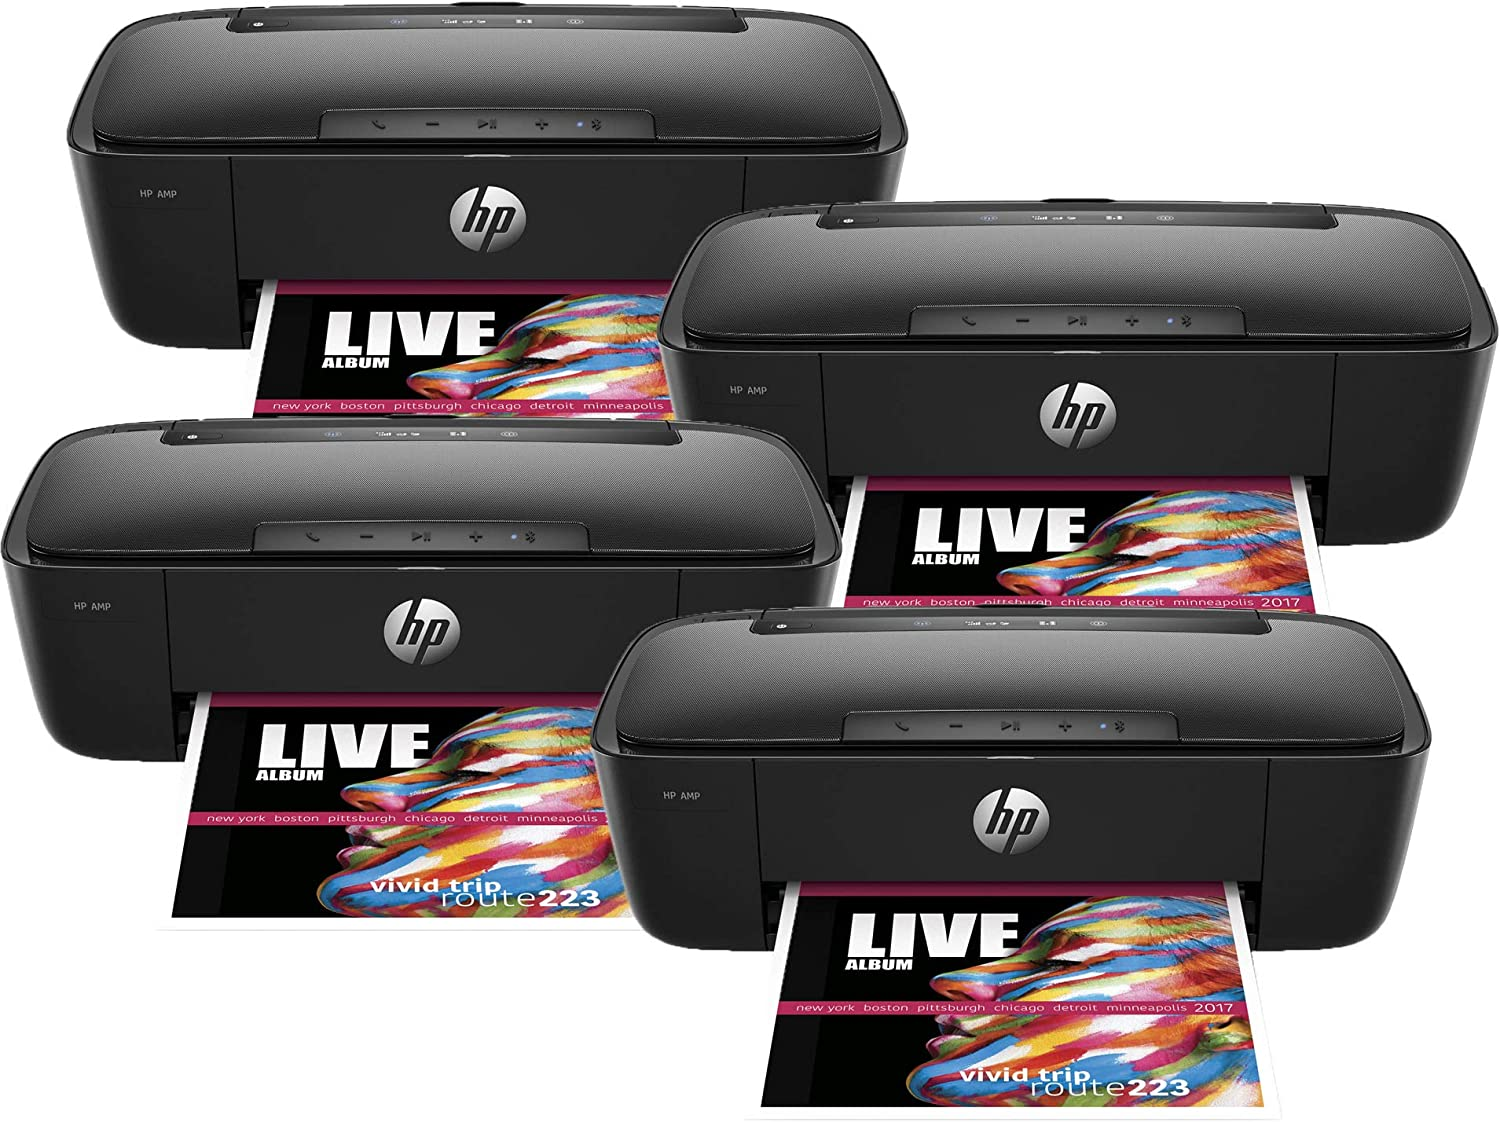 T8X39A HP AMP 100 Wireless Printer Printer and Bluetooth Speaker in One